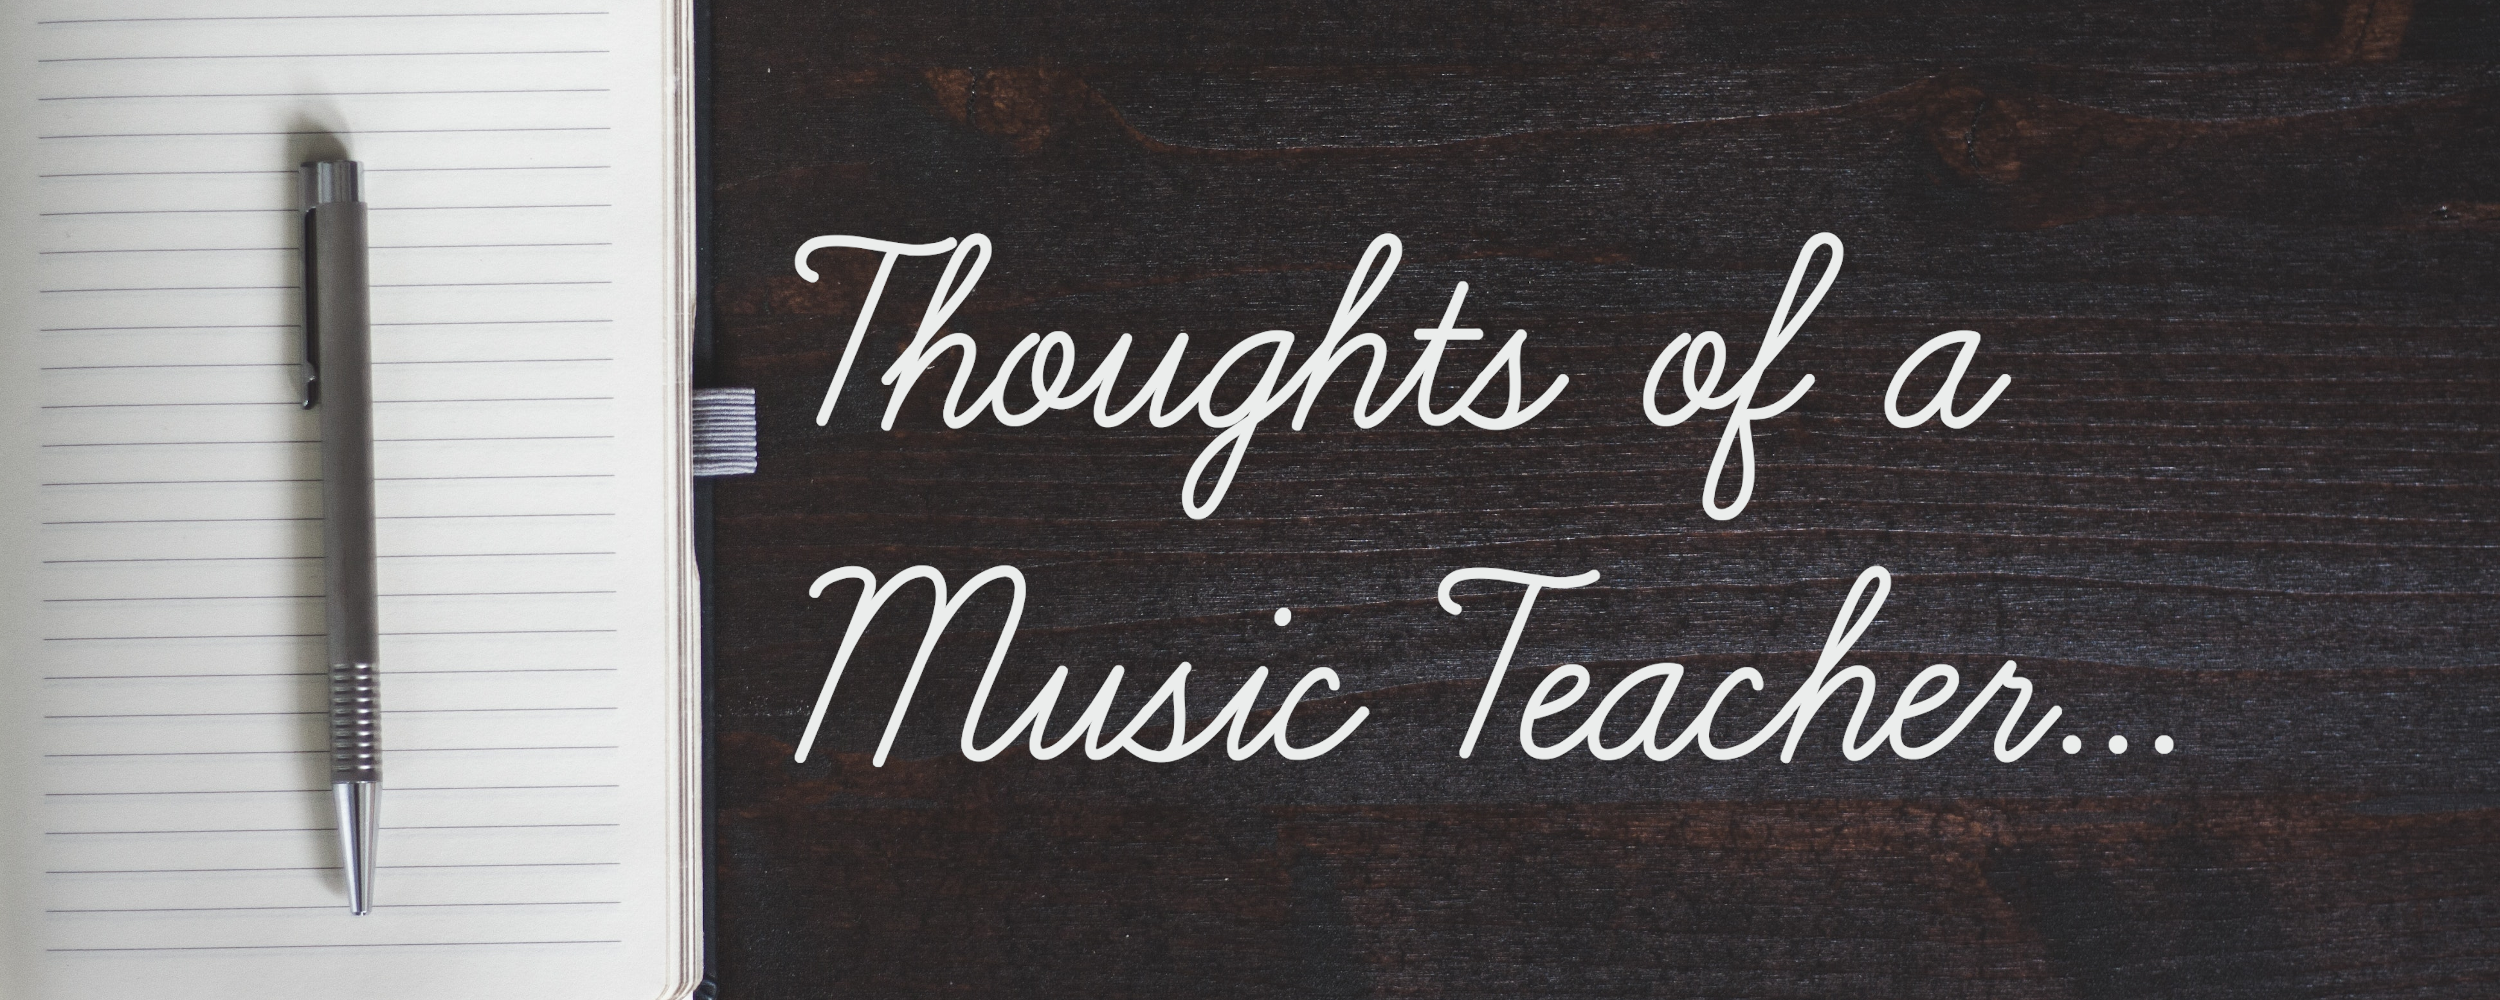 Thoughts Of A Music Teacher: Life during Covid-19